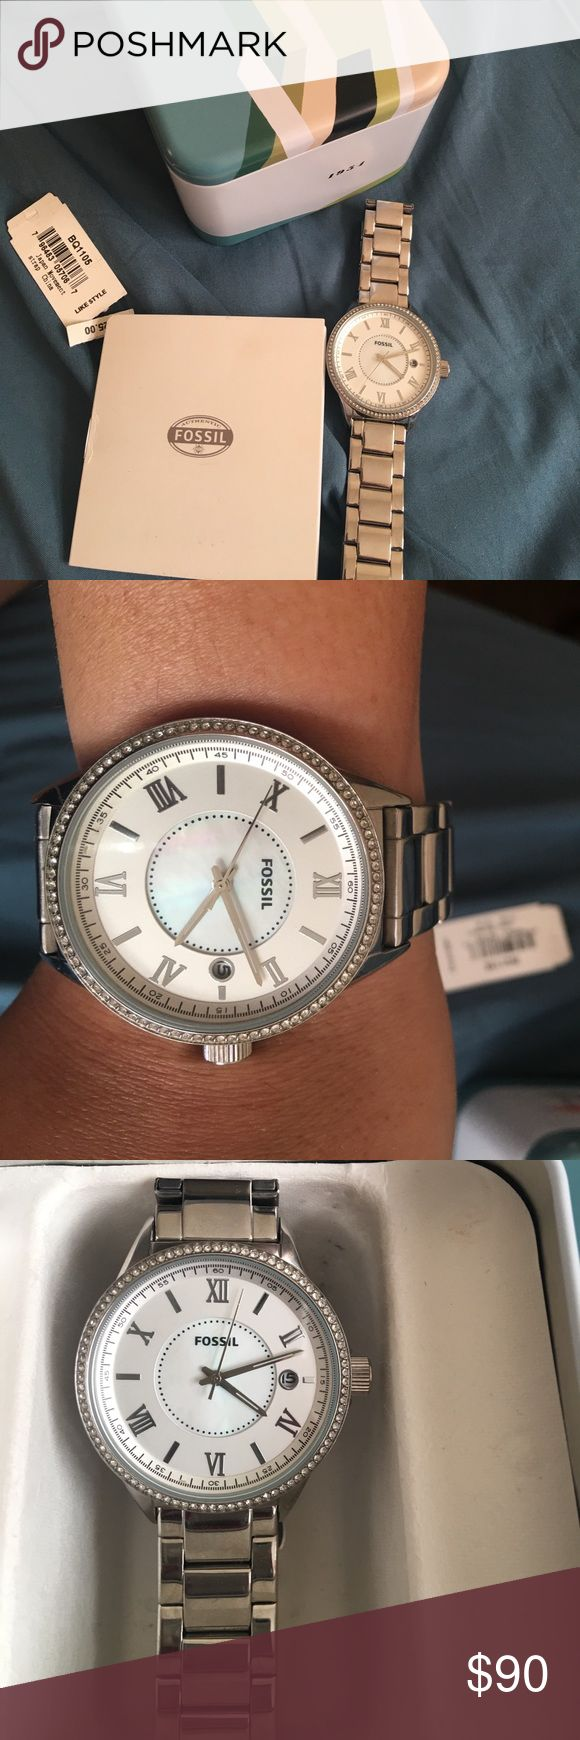 ONE DAY SALE!BRAND NEW IN BOX SILVER FOSSIL WATCH Brand new! All links on watch. Comes with tag & box! Perfect as a gift to yourself or a loved one! NO TRADES! Fossil Accessories Watches